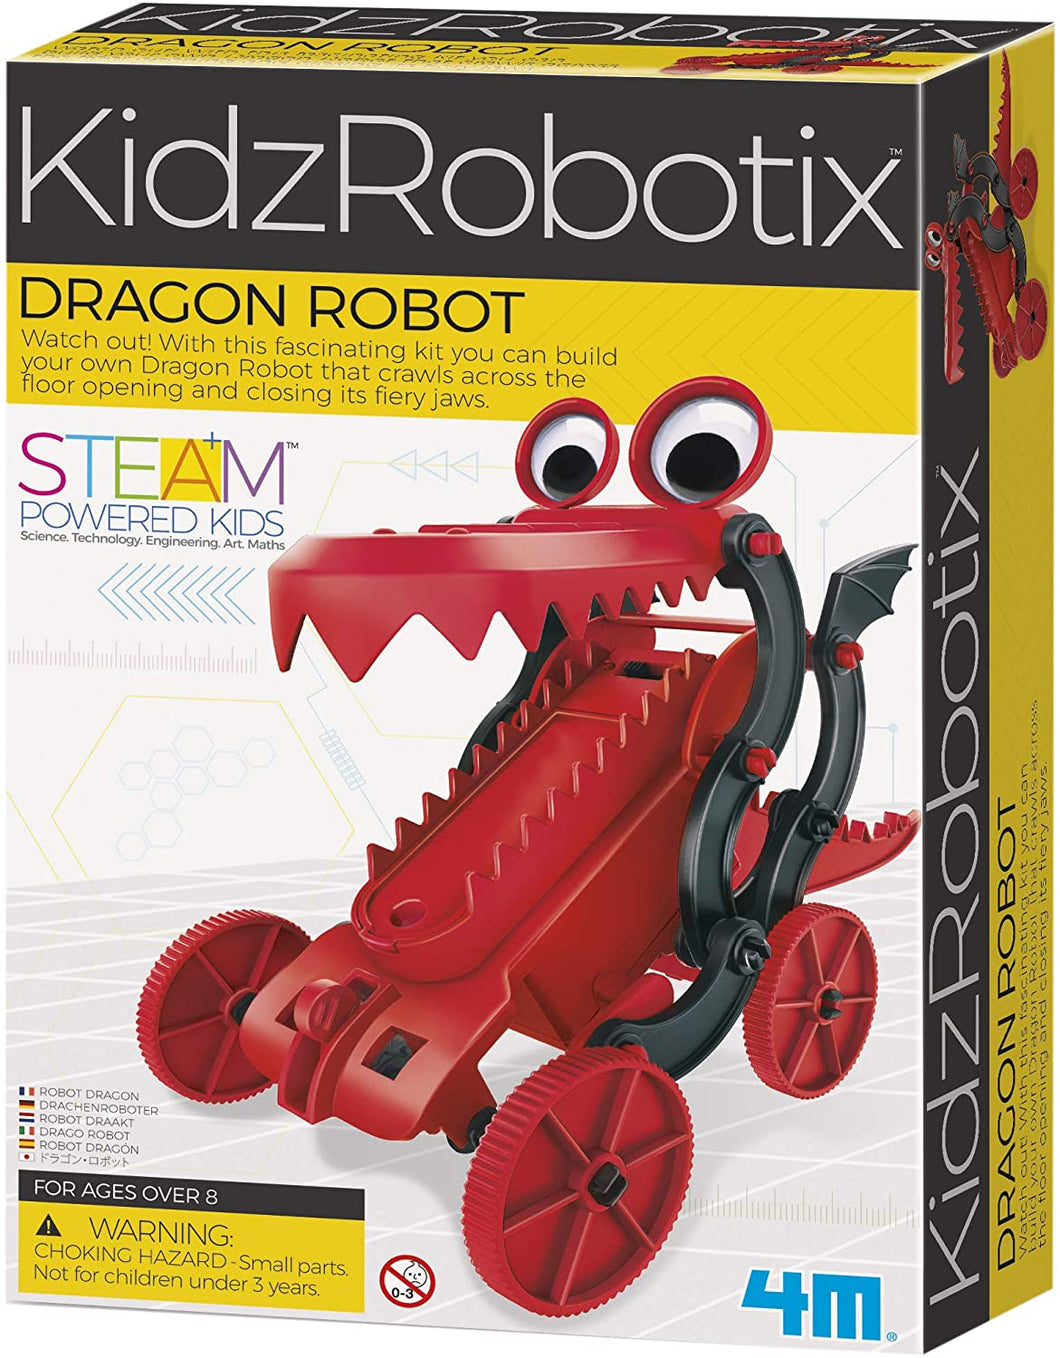 KidzRobotix Dragon Robot Kit